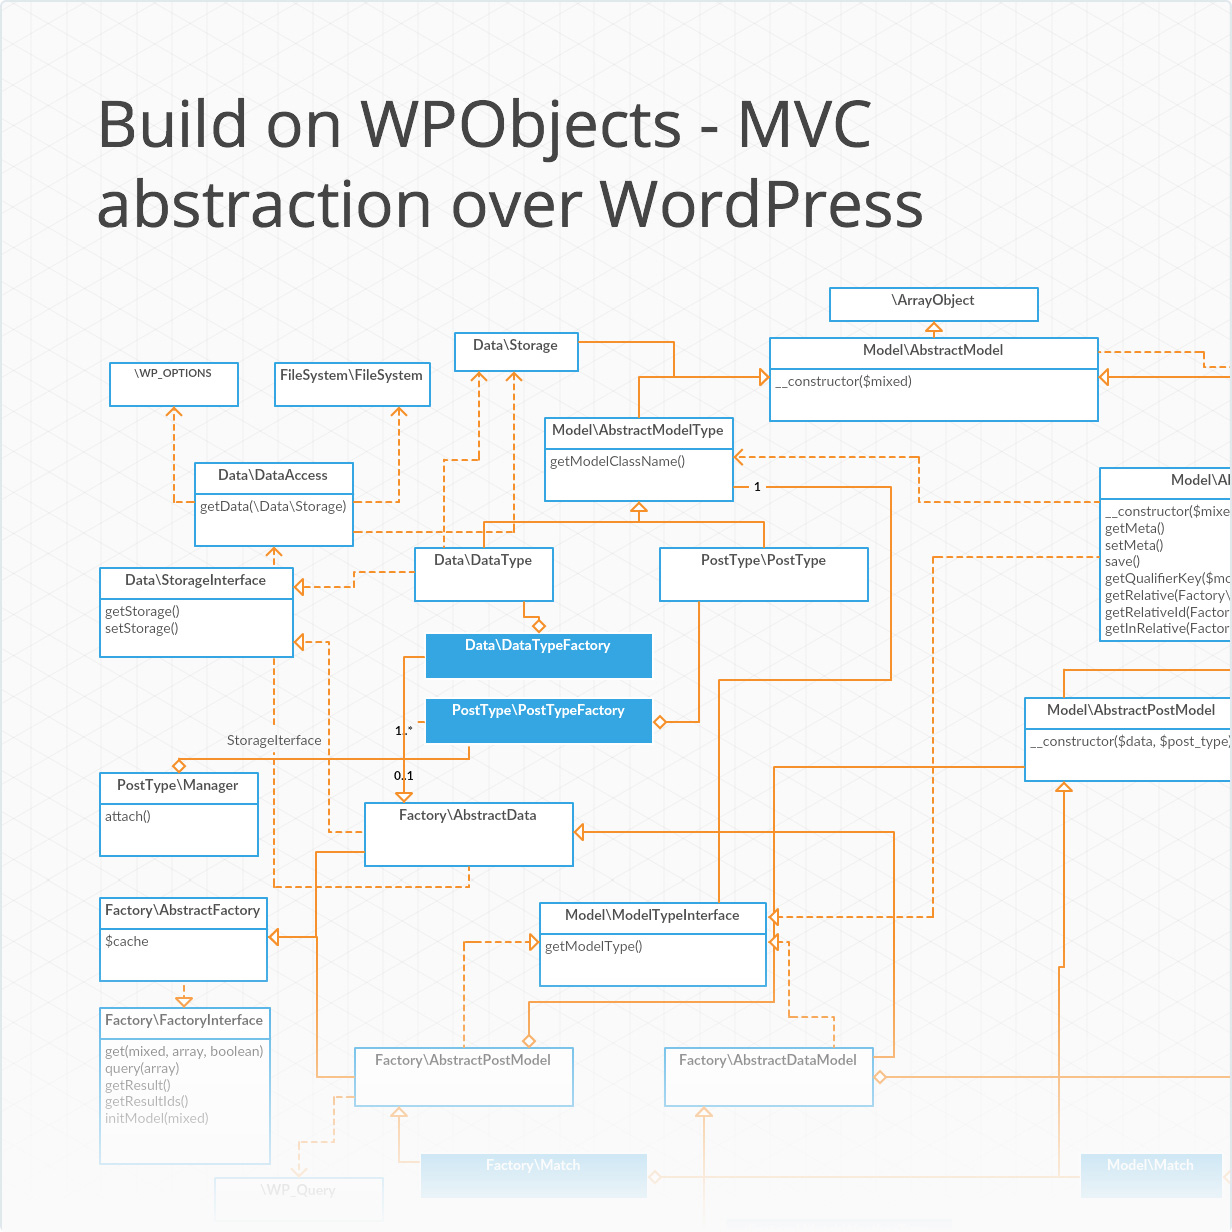 WPObject - MVC abstraction on wordpress for plugin development